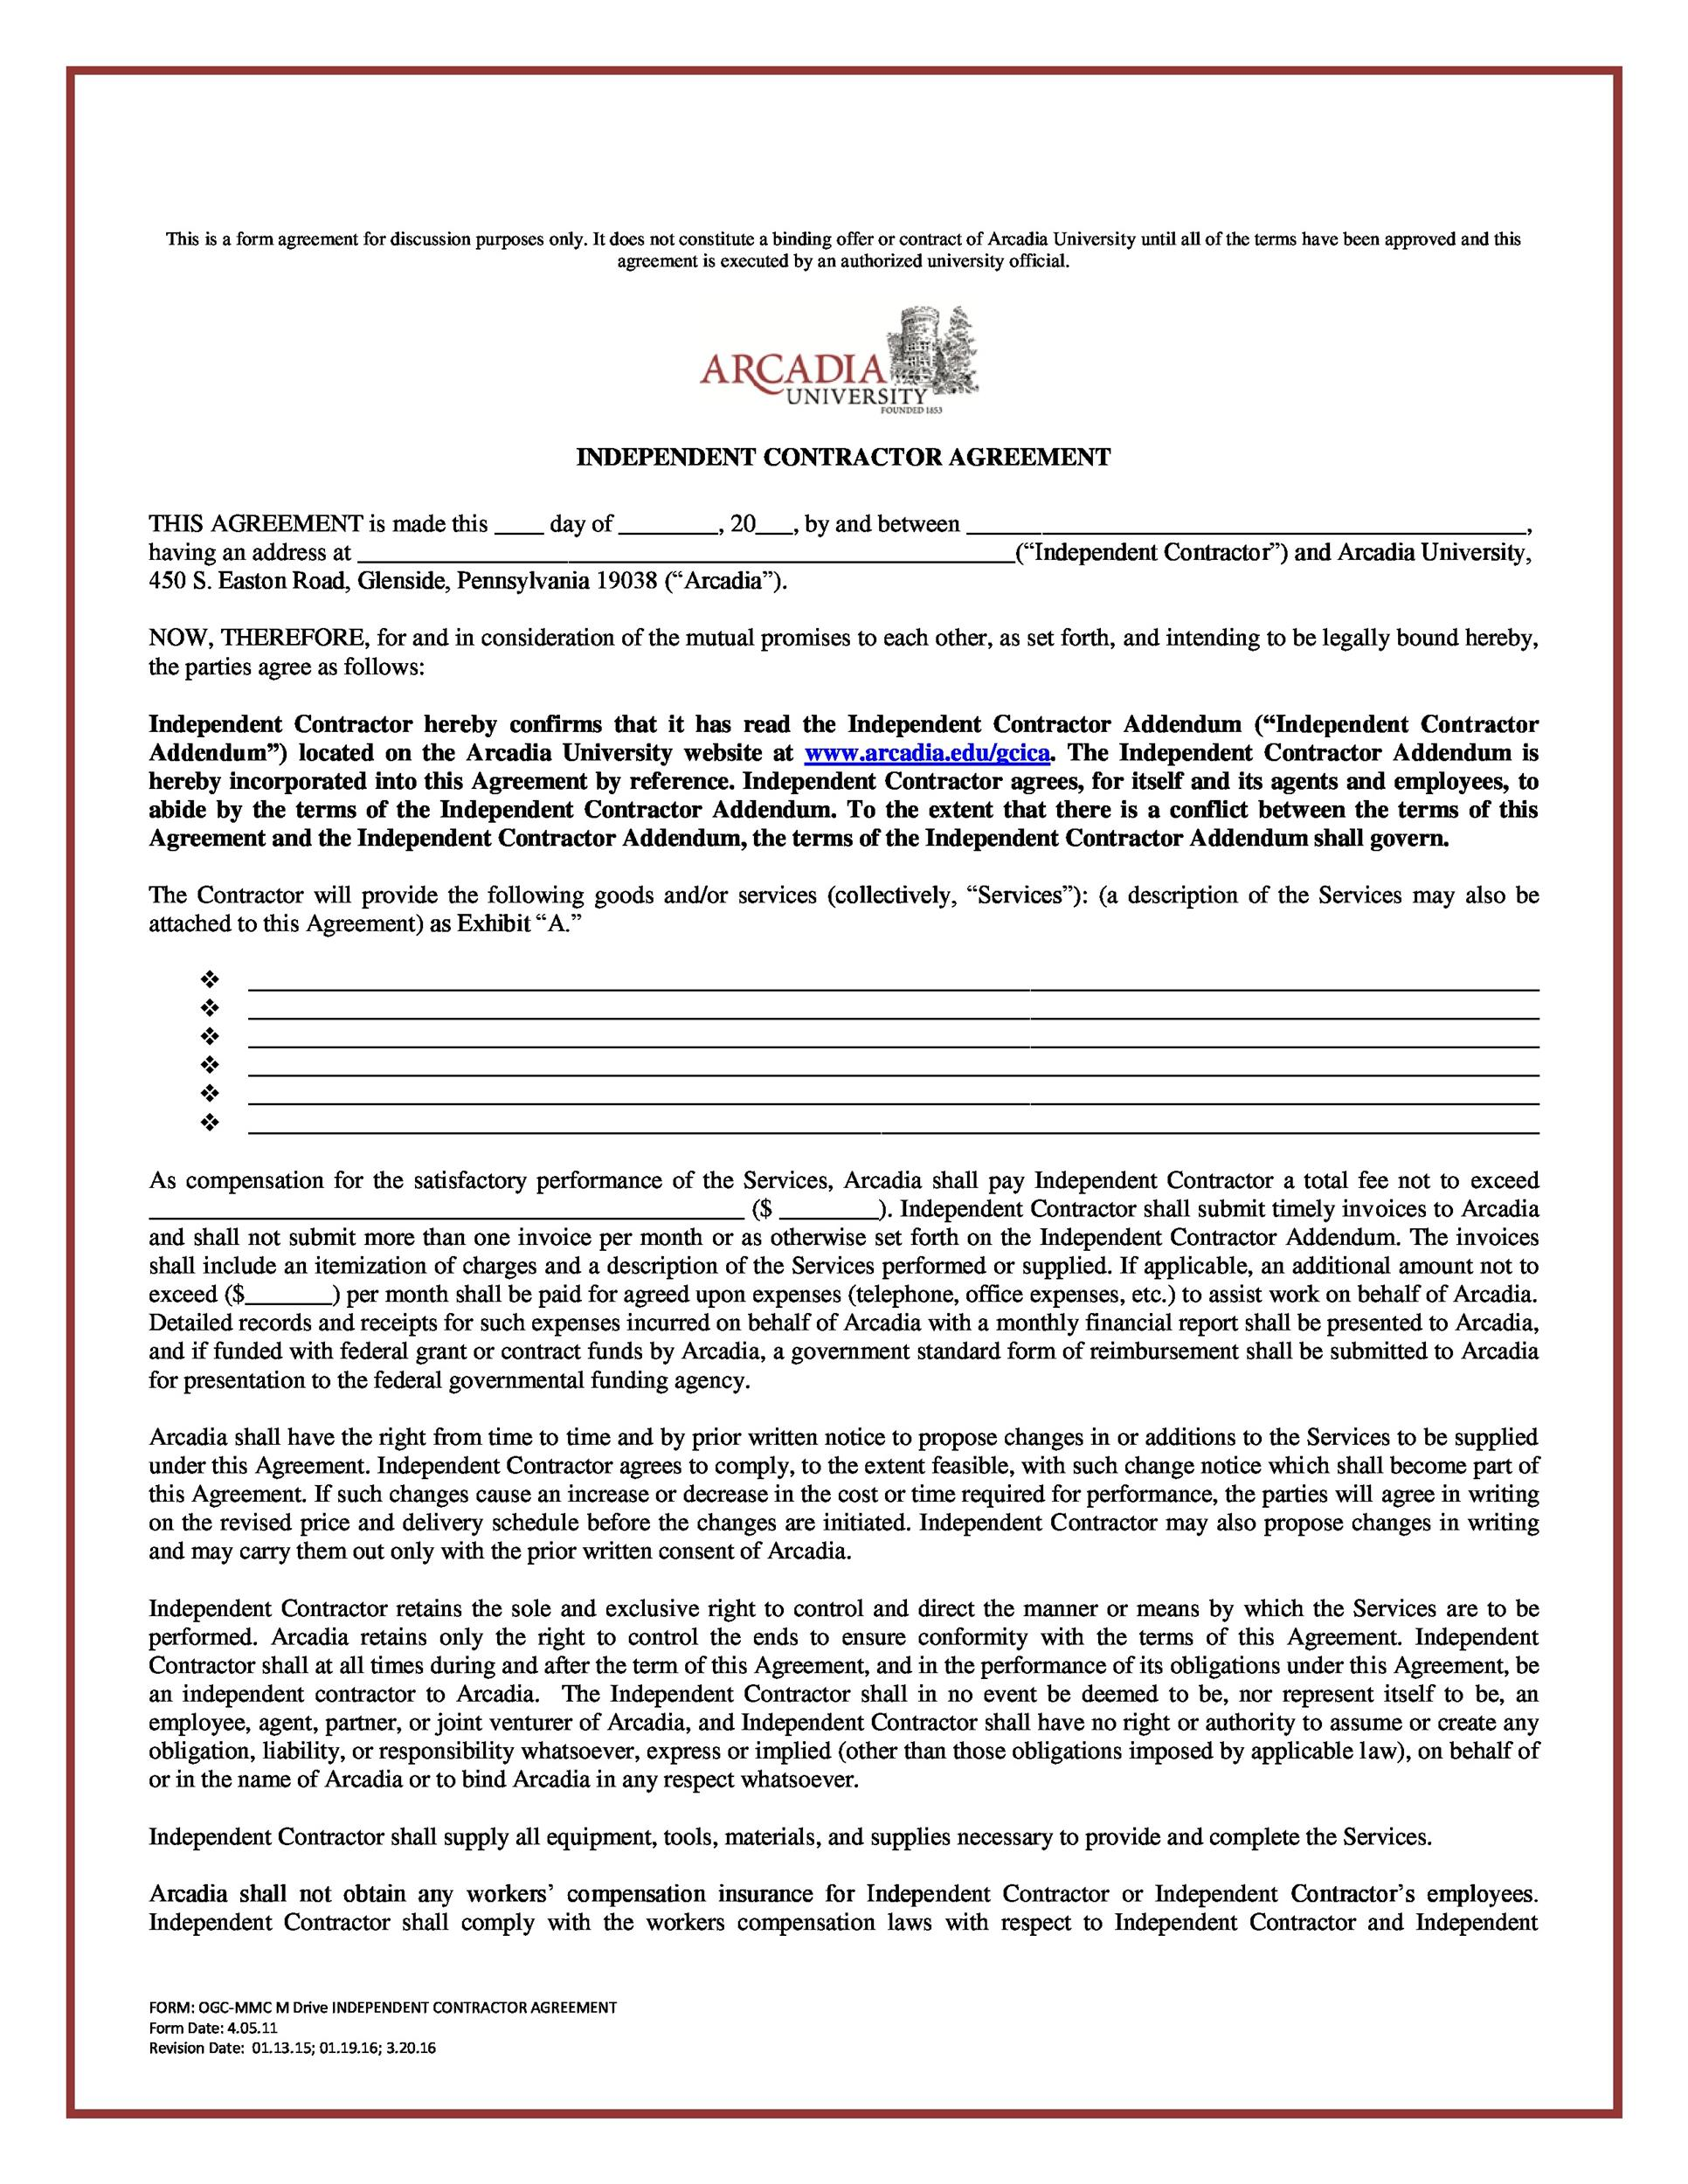 Free independent contractor agreement 40